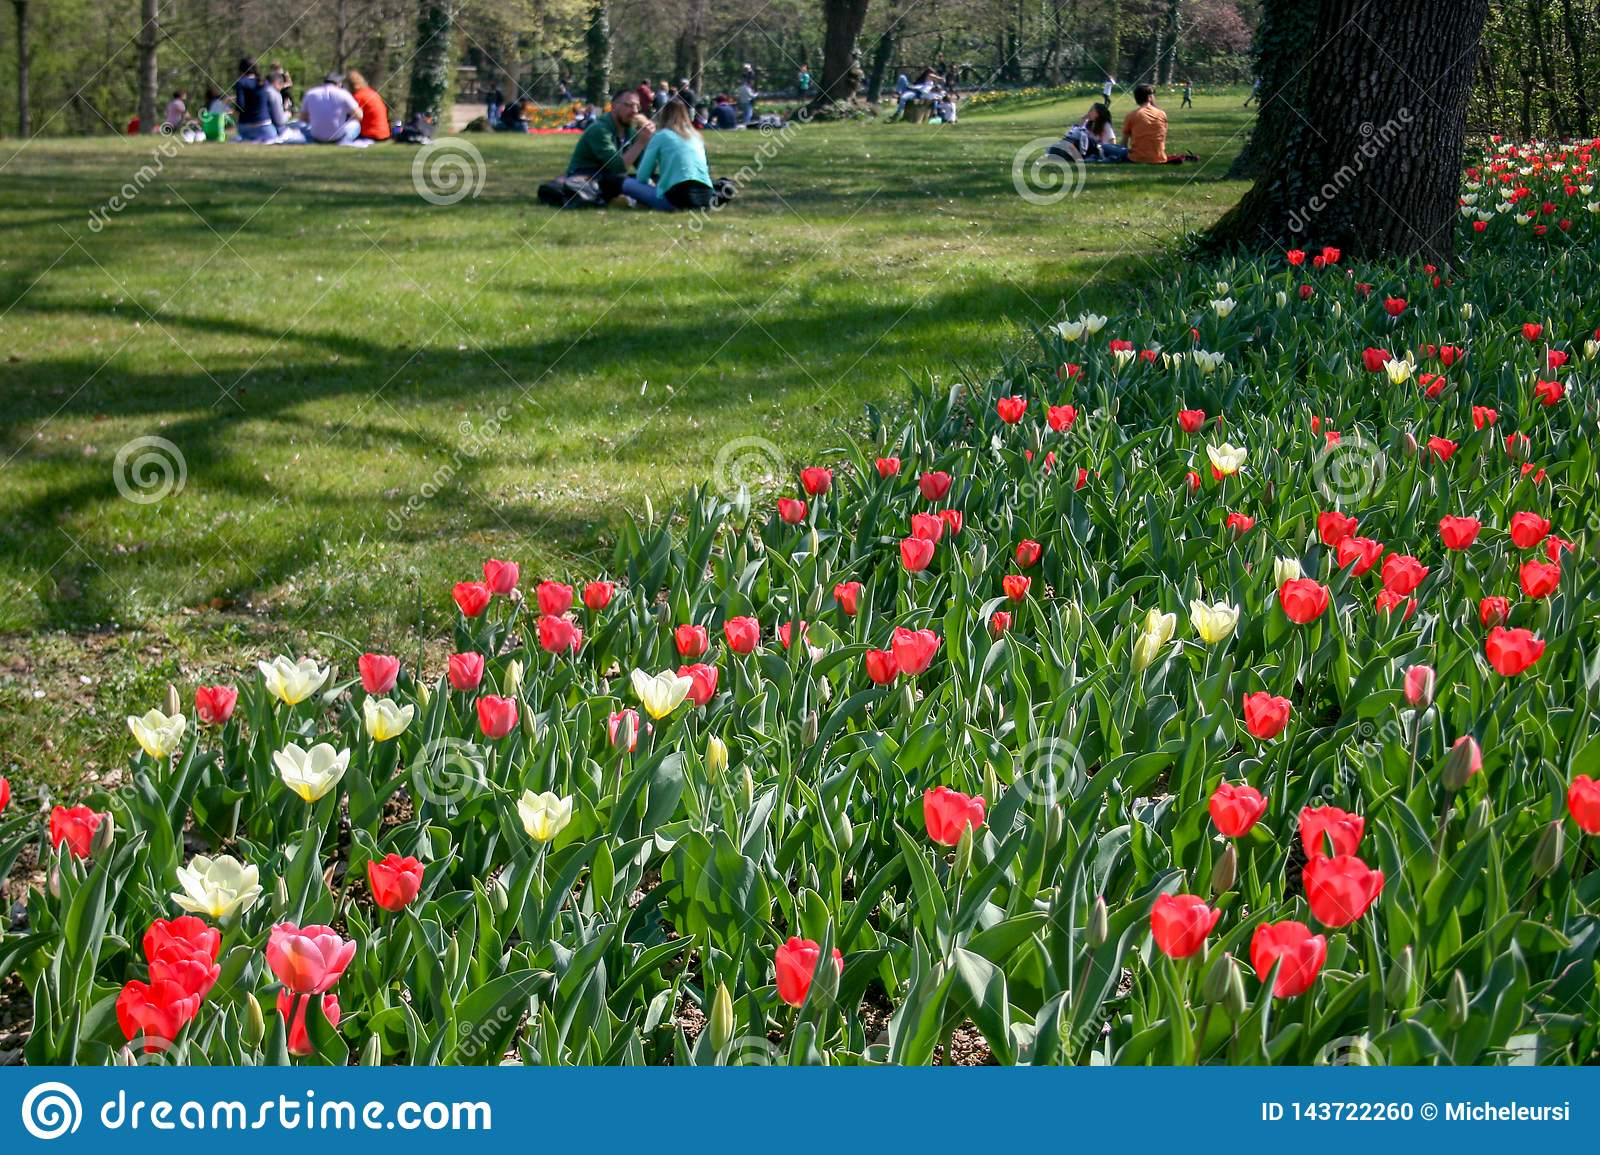 People In A Park With Tulips Editorial Image Image Of Meadow Colorful 143722260